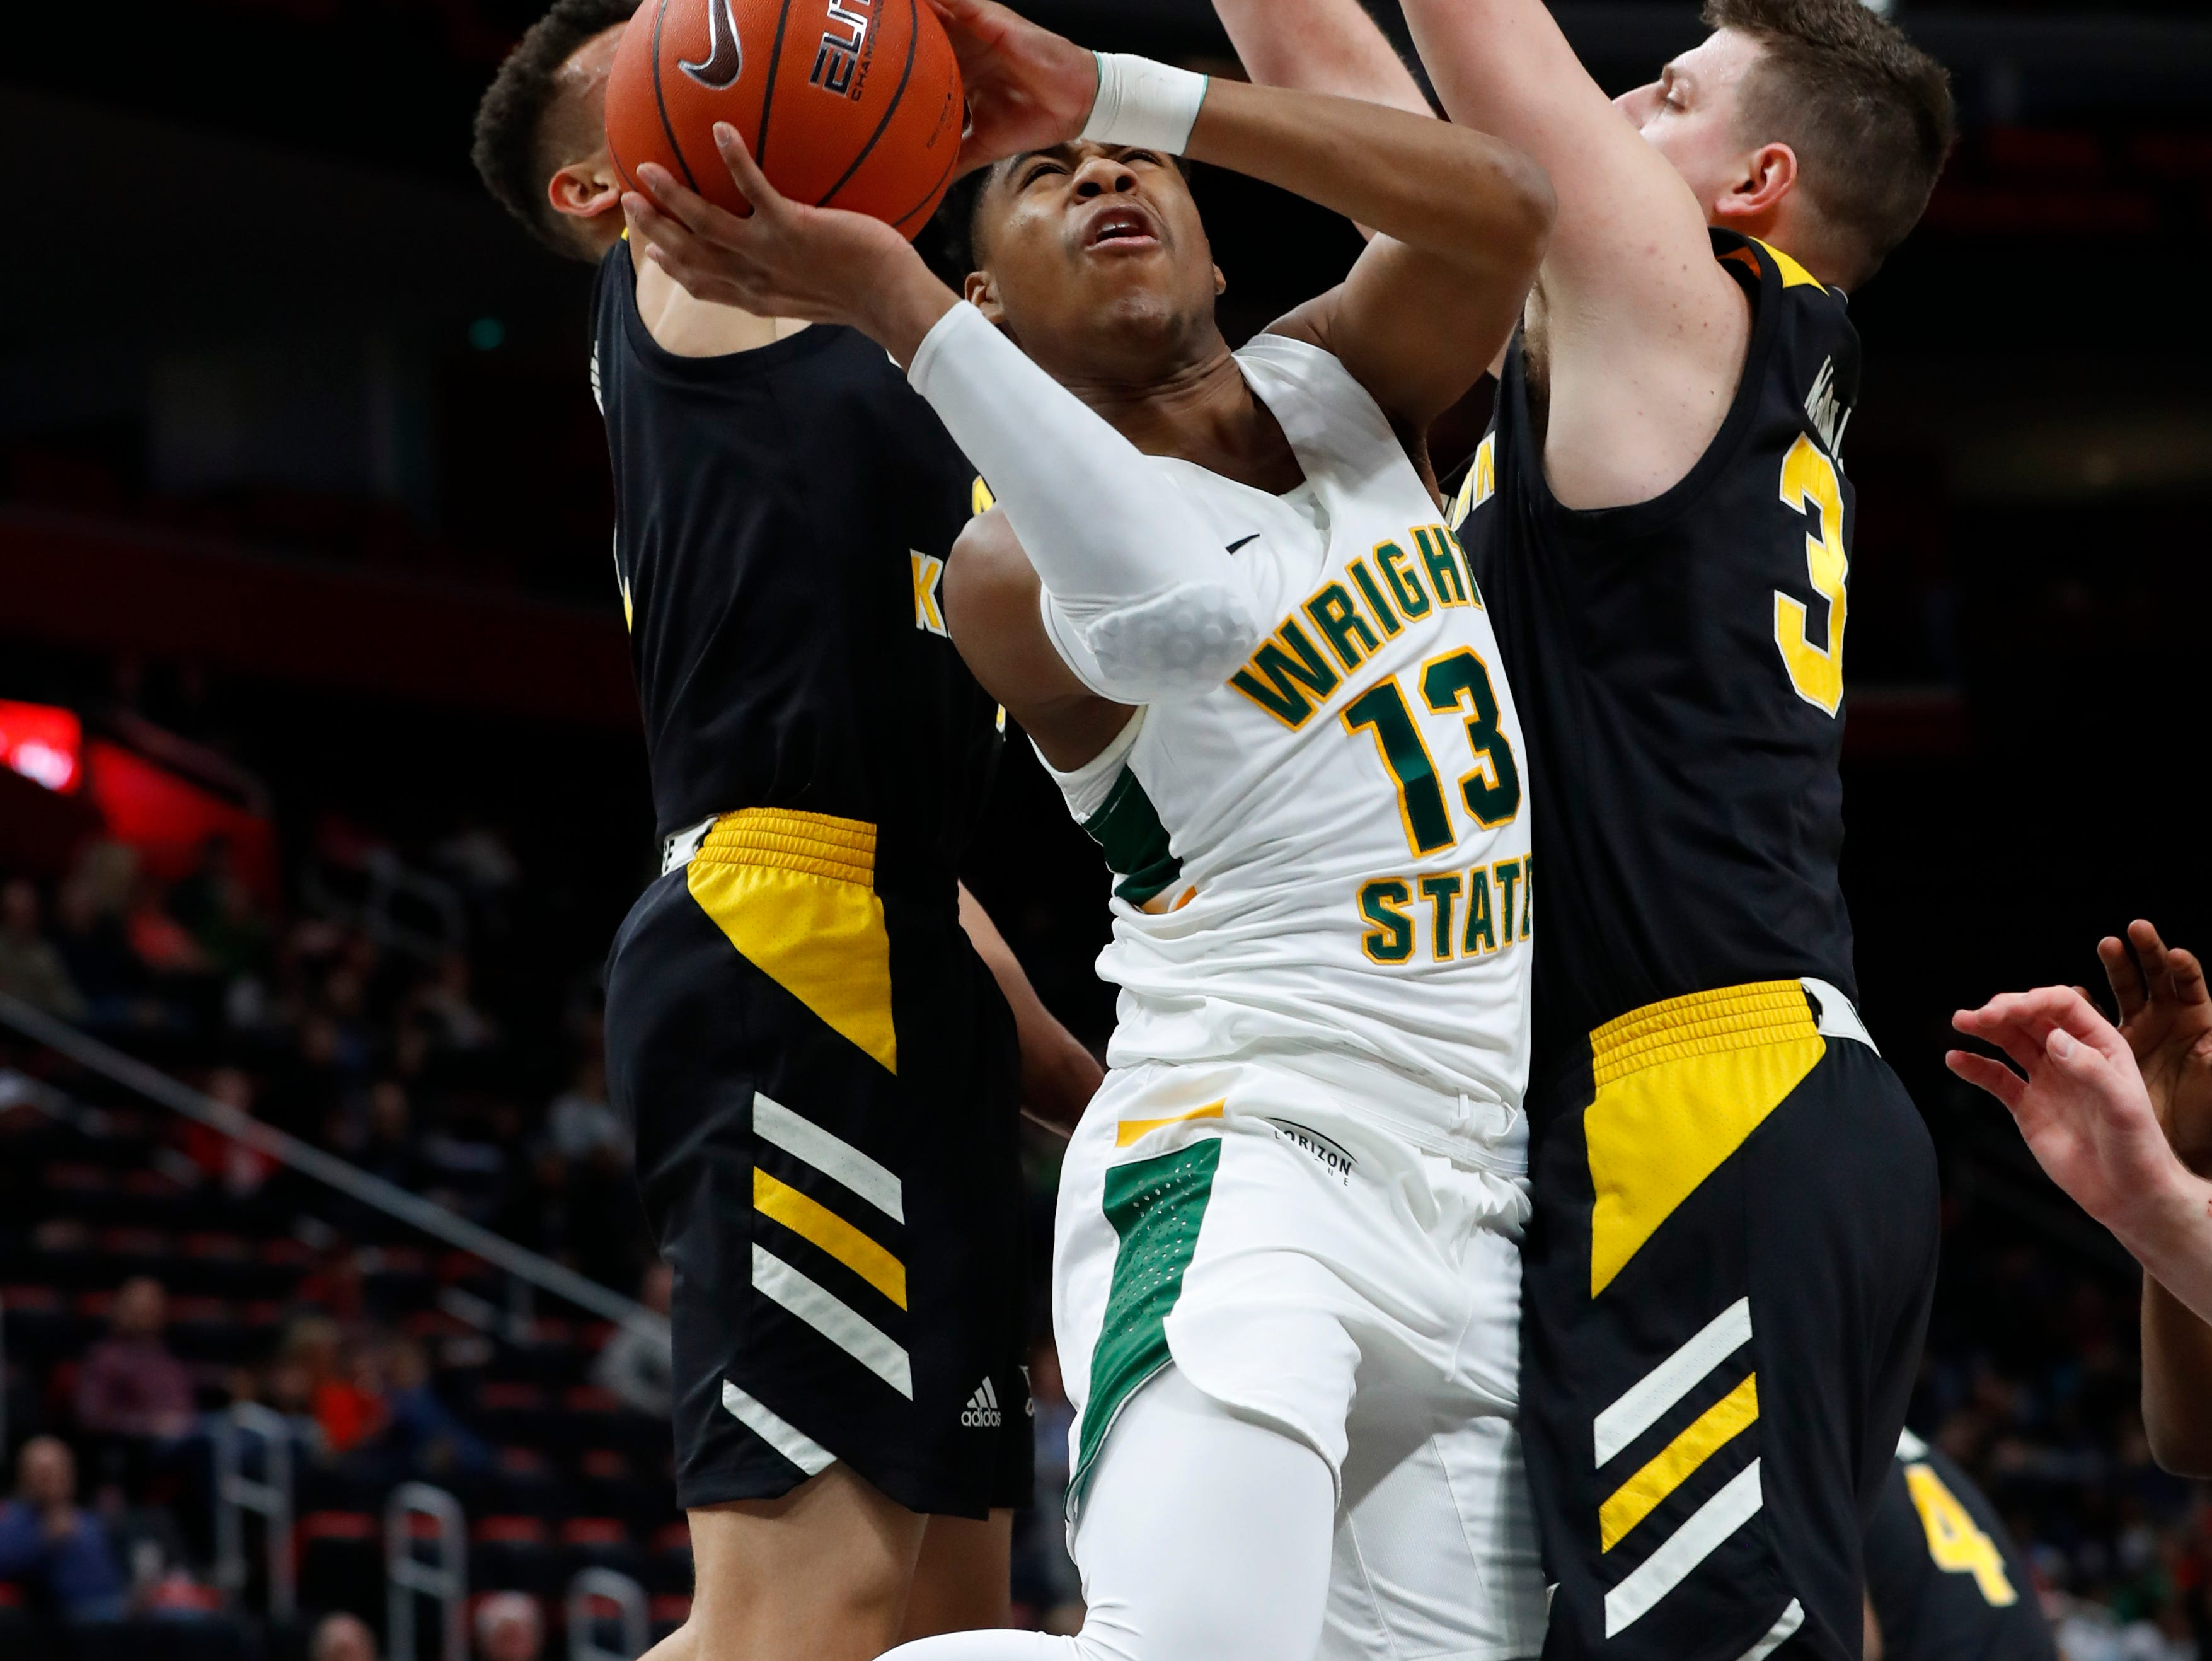 Wright State guard Malachi Smith (13) drives between Northern Kentucky guard Paul Djoko and forward Drew McDonald (34) during the first half of an NCAA college basketball game for the Horizon League men's tournament championship in Detroit, Tuesday, March 12, 2019.